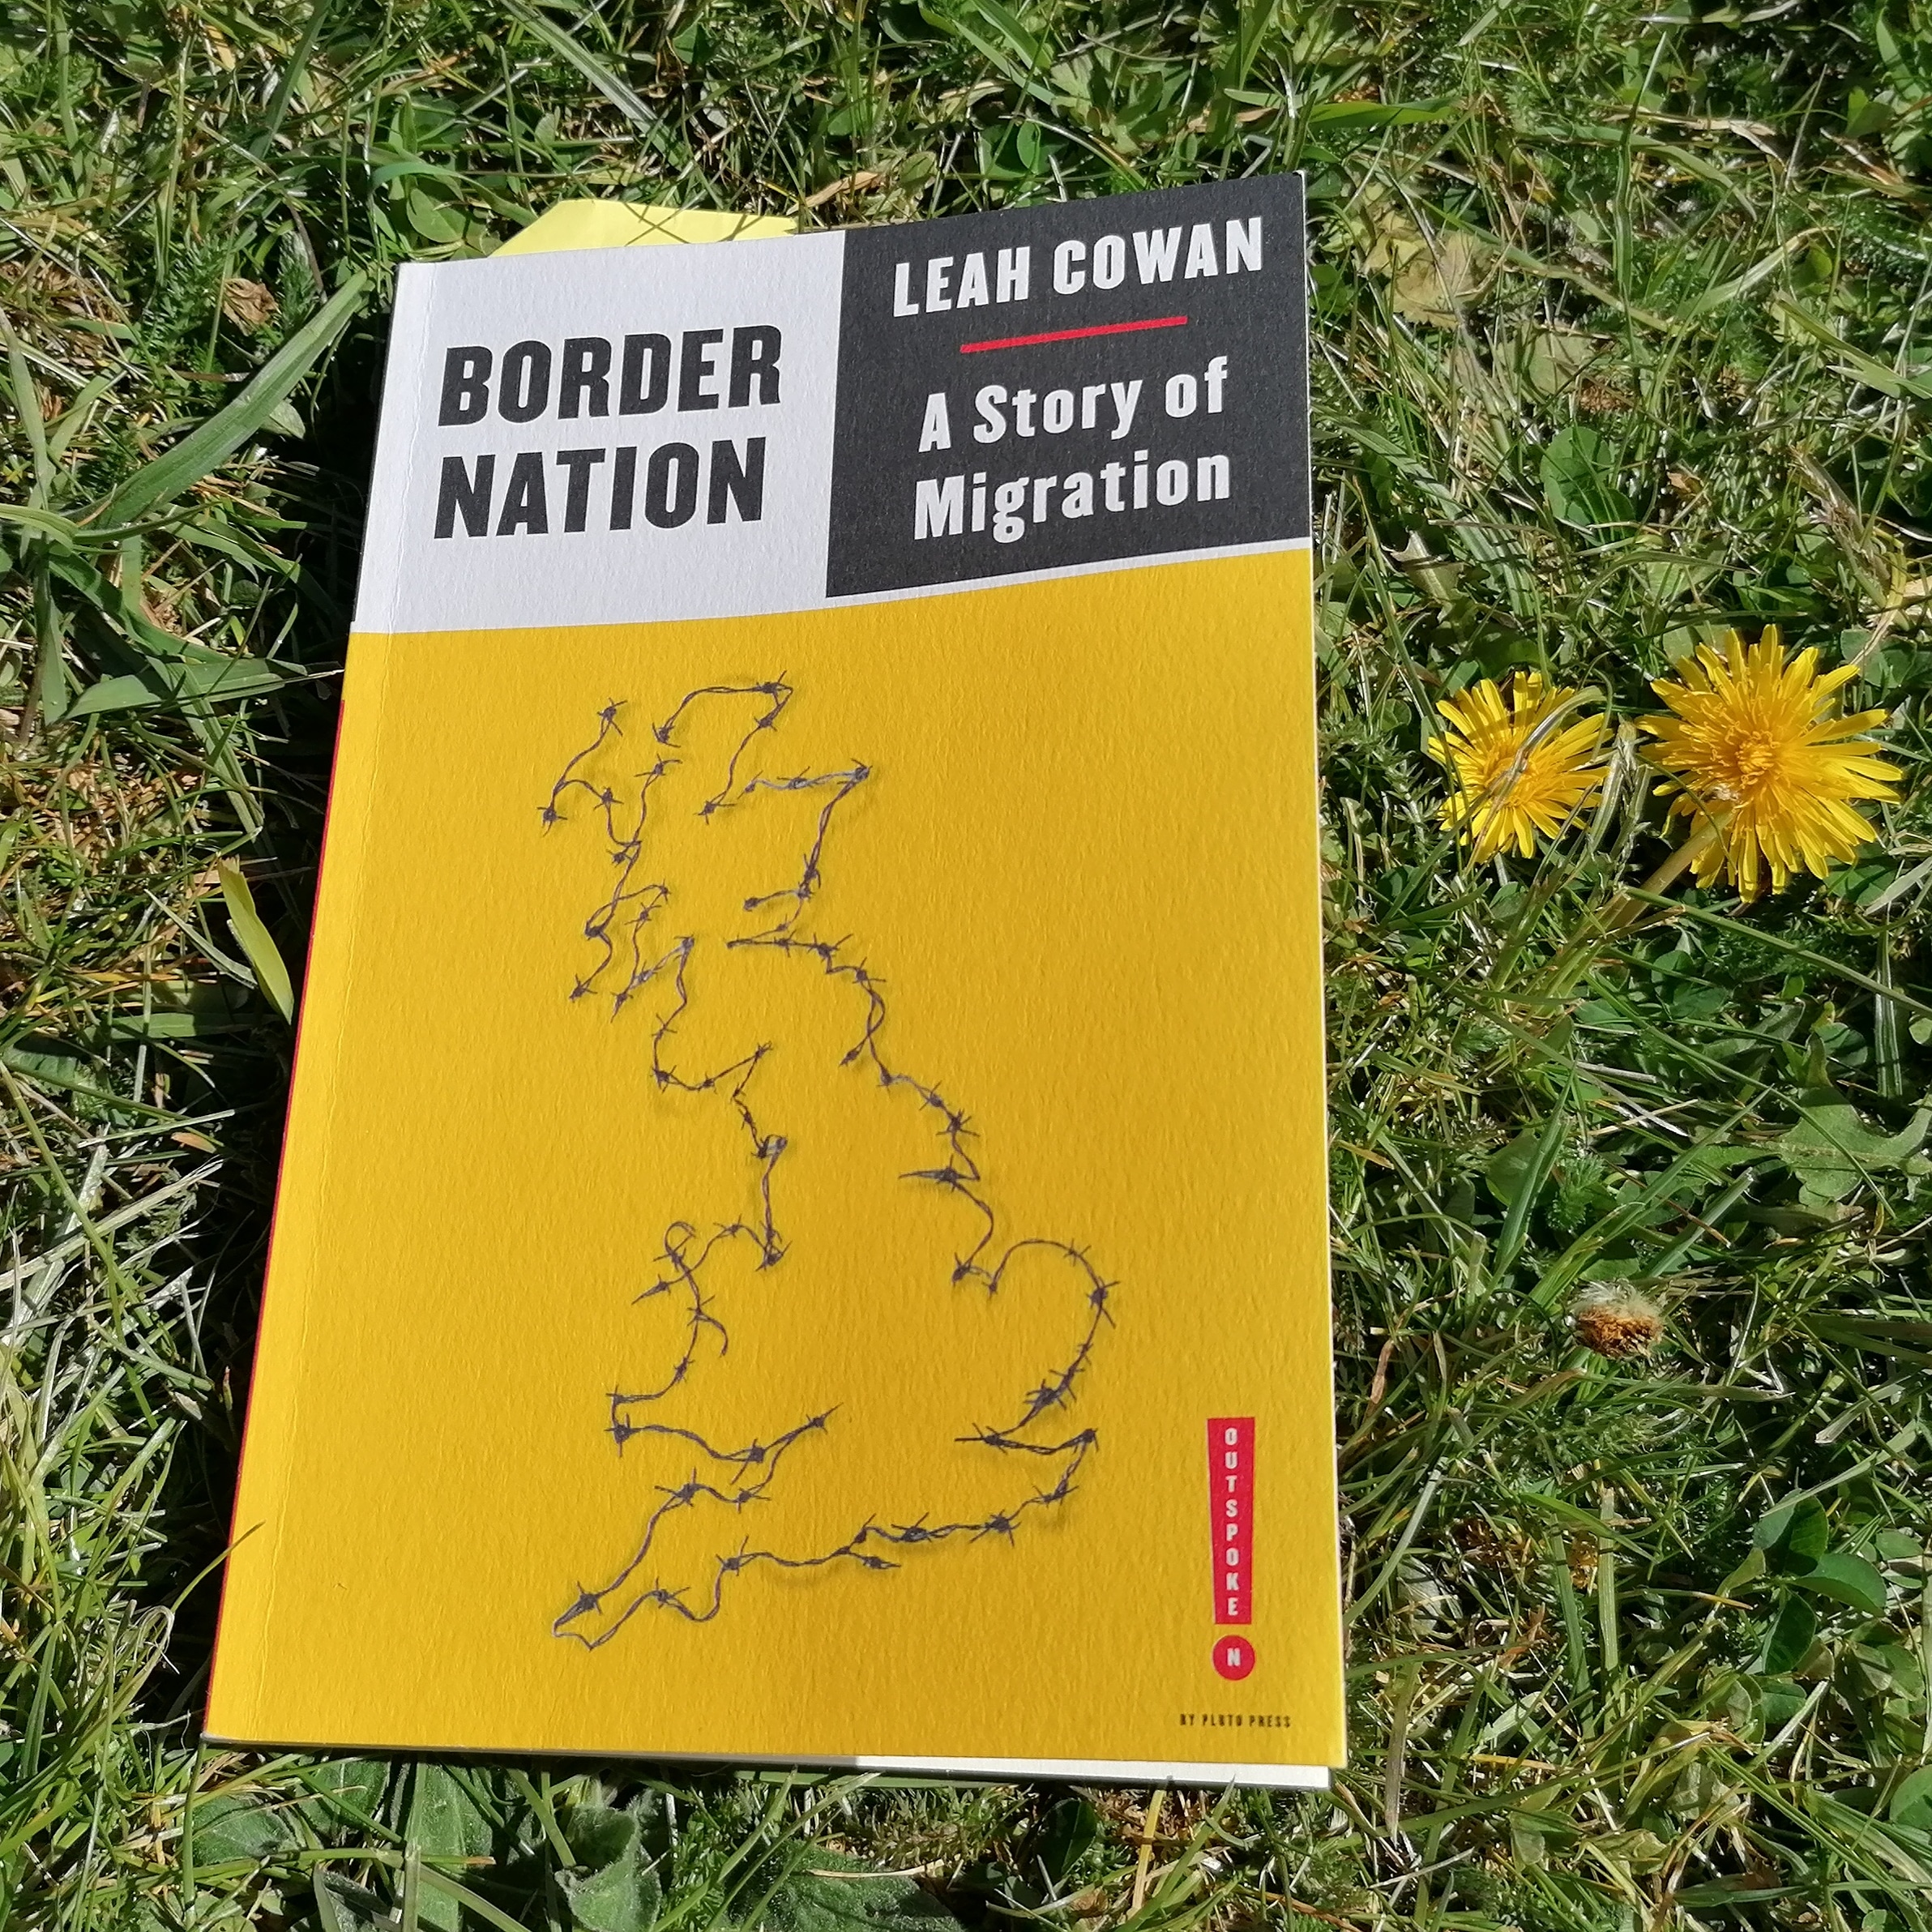 copy of Border Nation book lying on grass